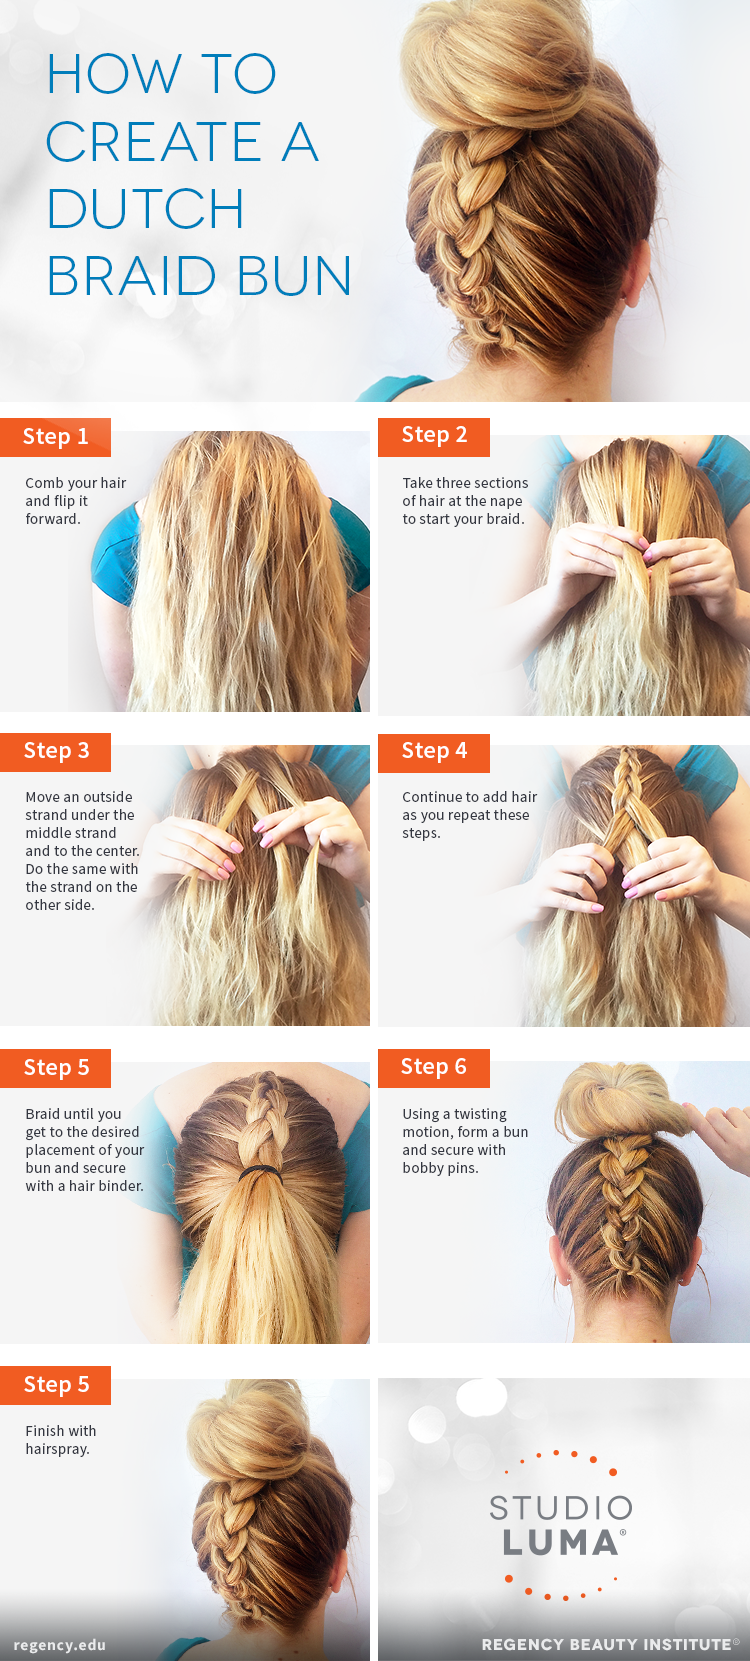 Braid French tutorial step by step pictures forecasting to wear for winter in 2019